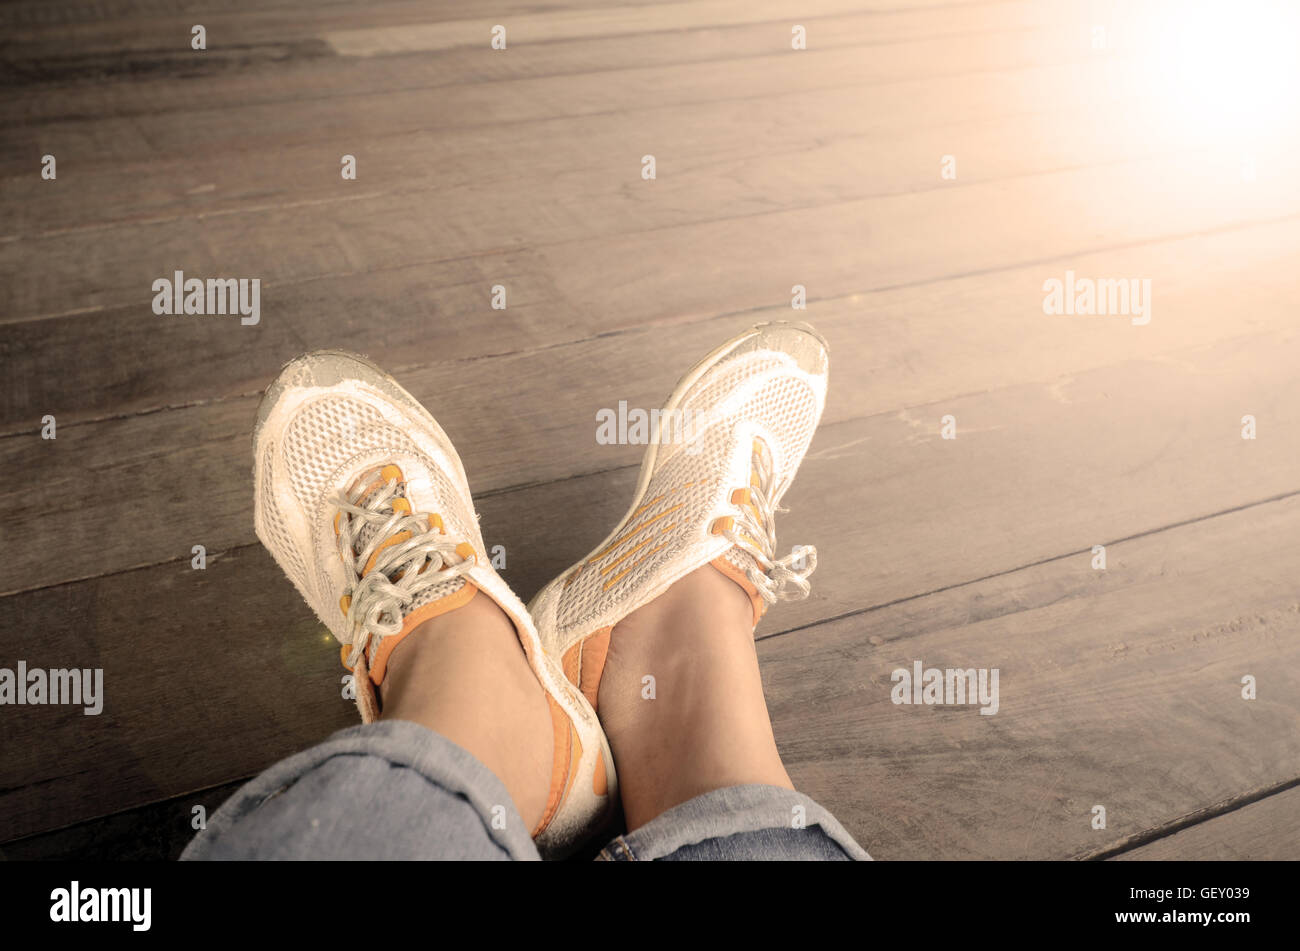 Relax time with one fine day. - Stock Image